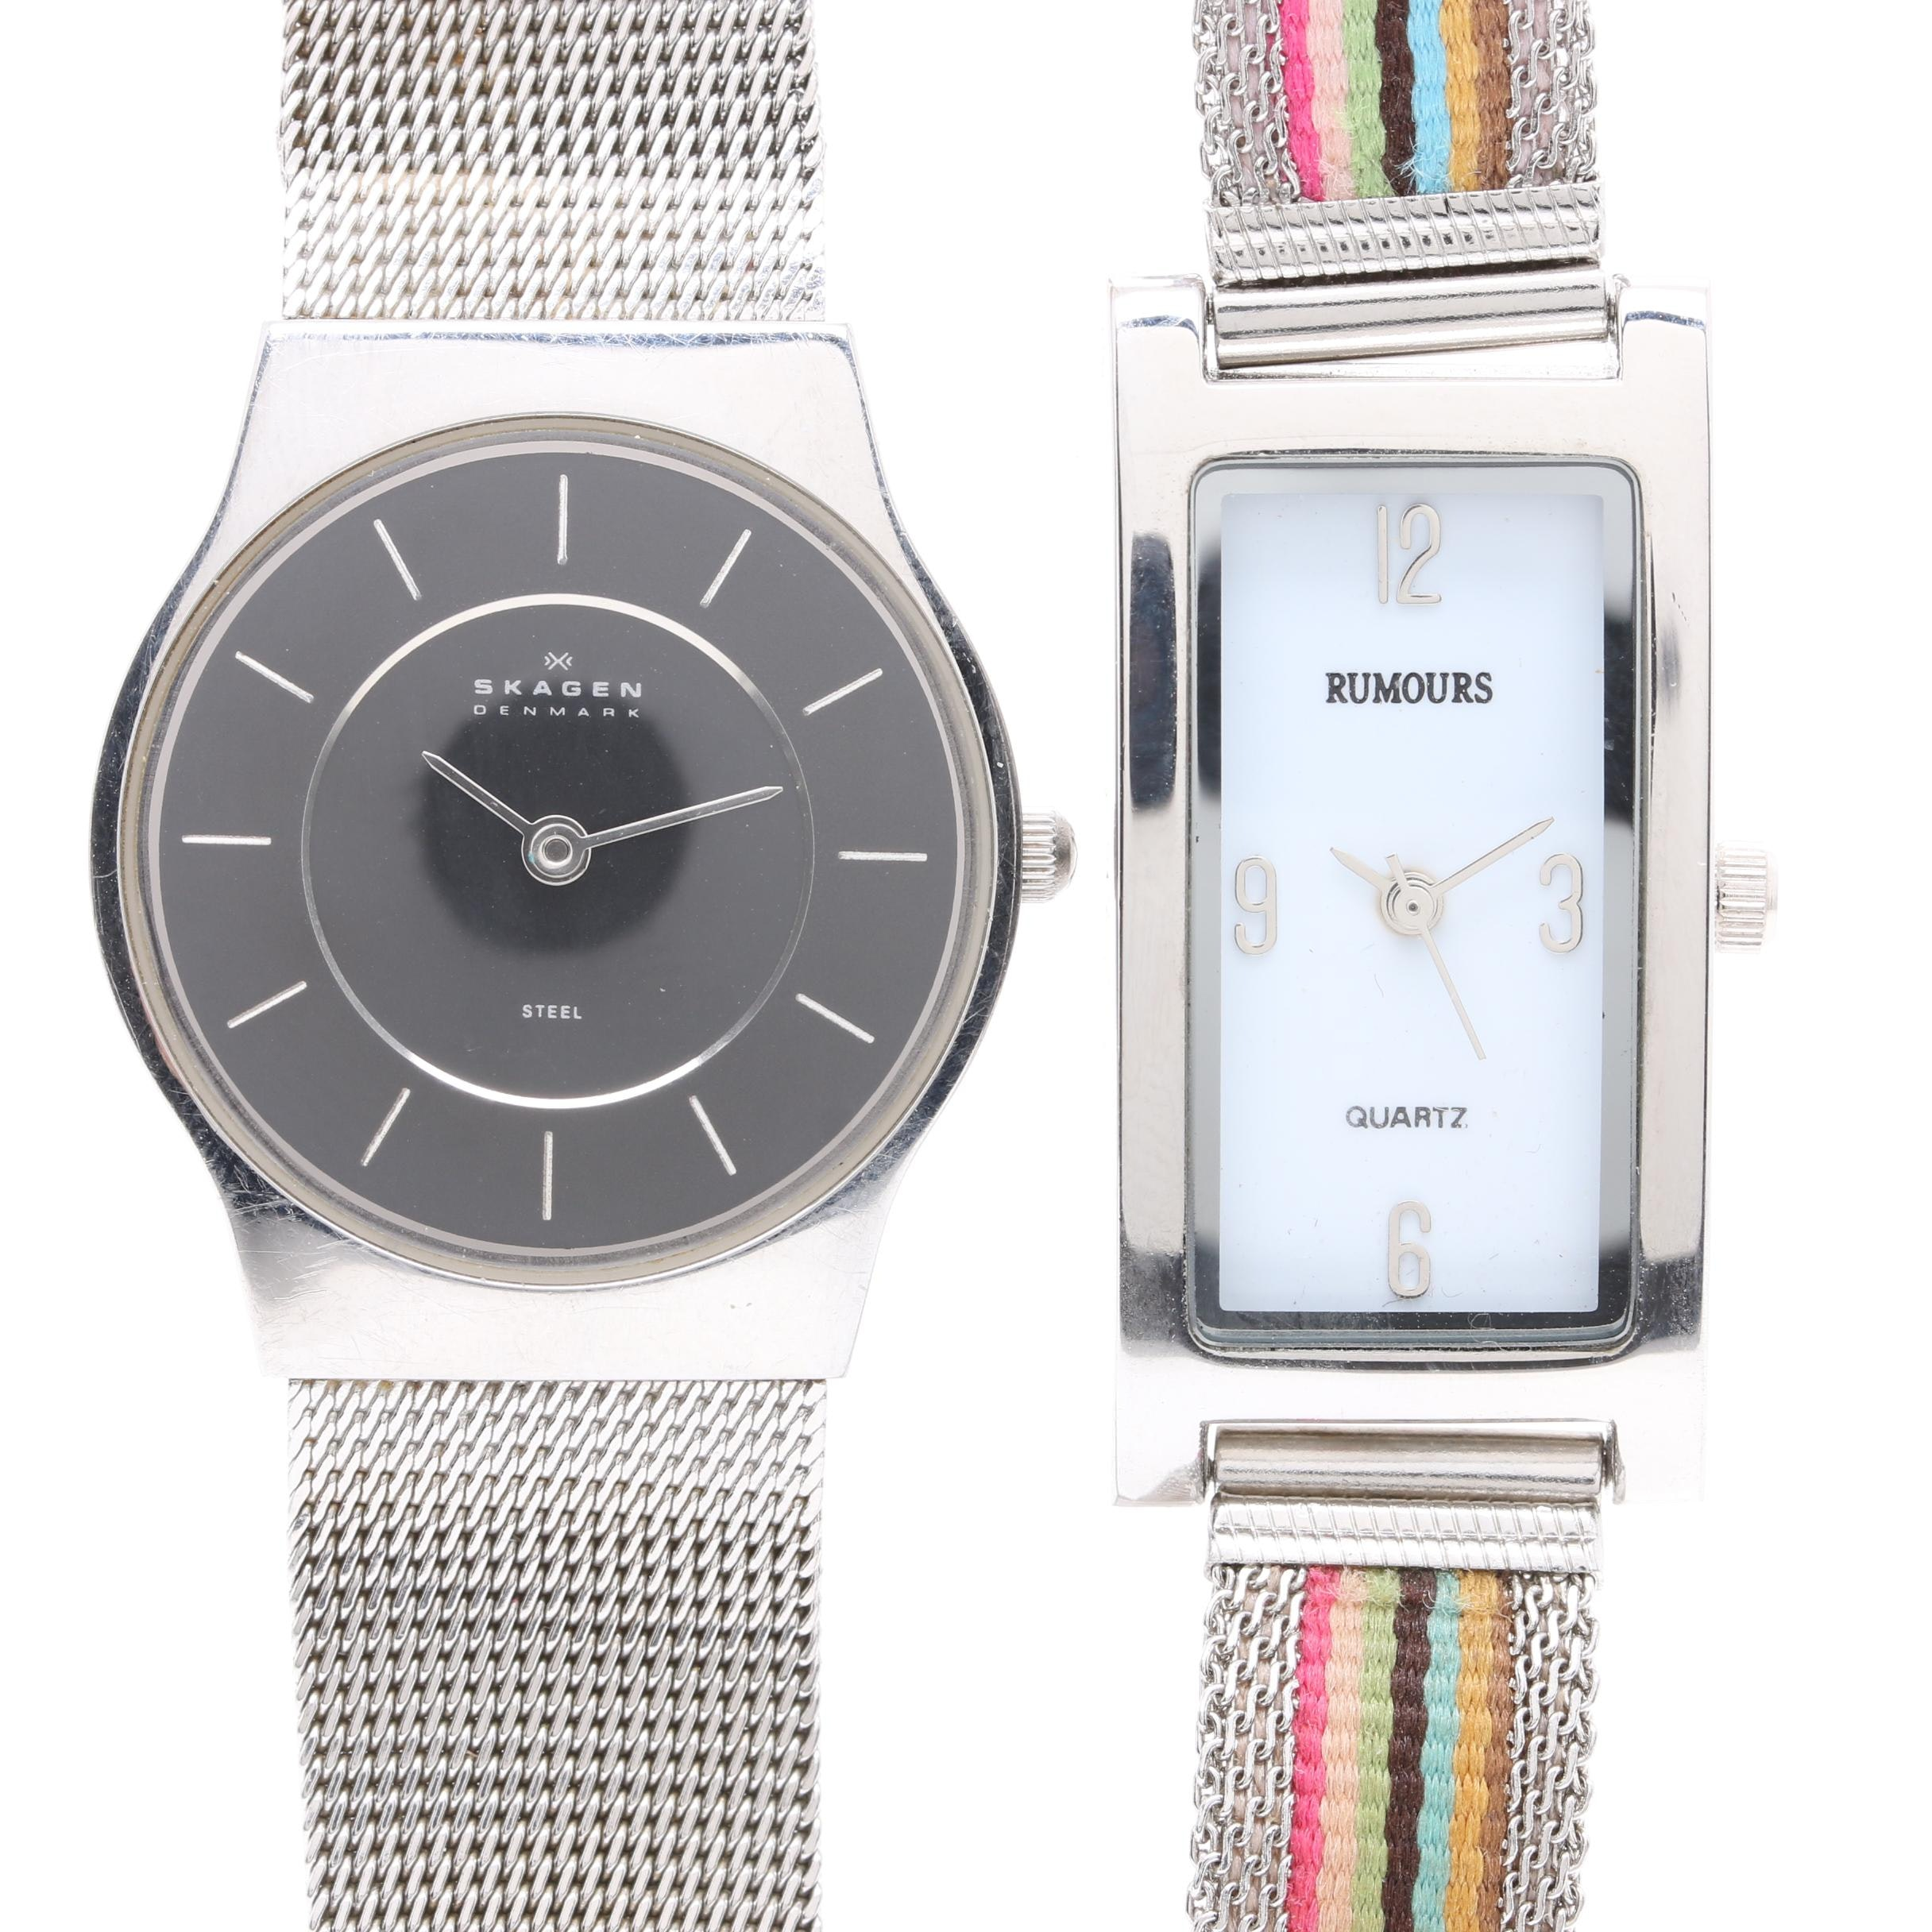 Skagen and Rumours Stainless Steel and Silver Tone Wristwatches